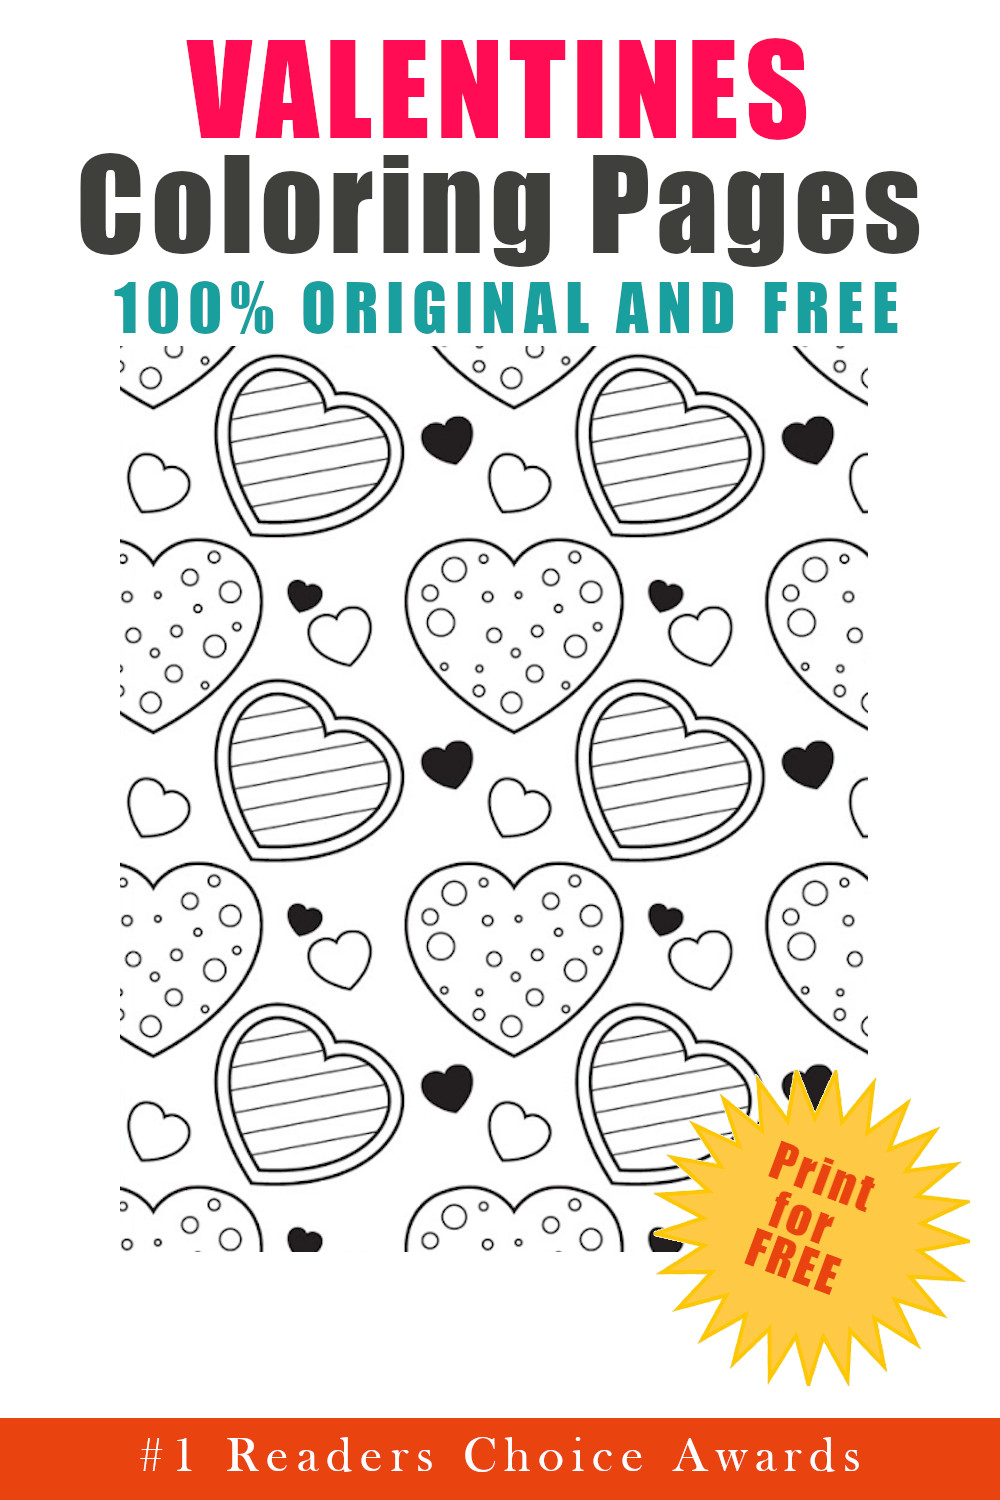 original and free valentine's coloring pages